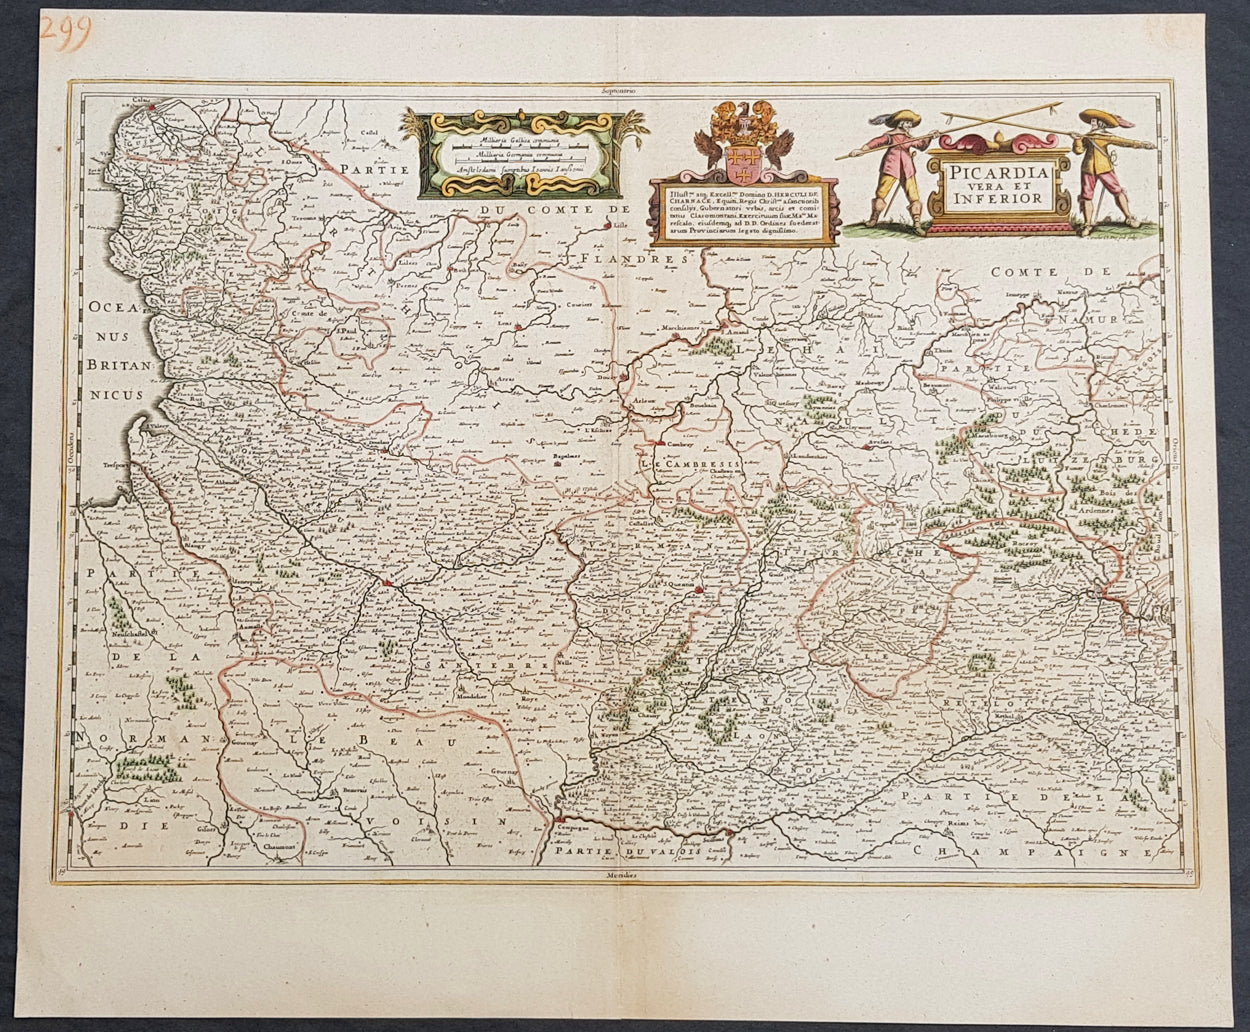 Map Of France Calais.1638 Jan Jansson Antique Map Of The Picardy Region Of Northern